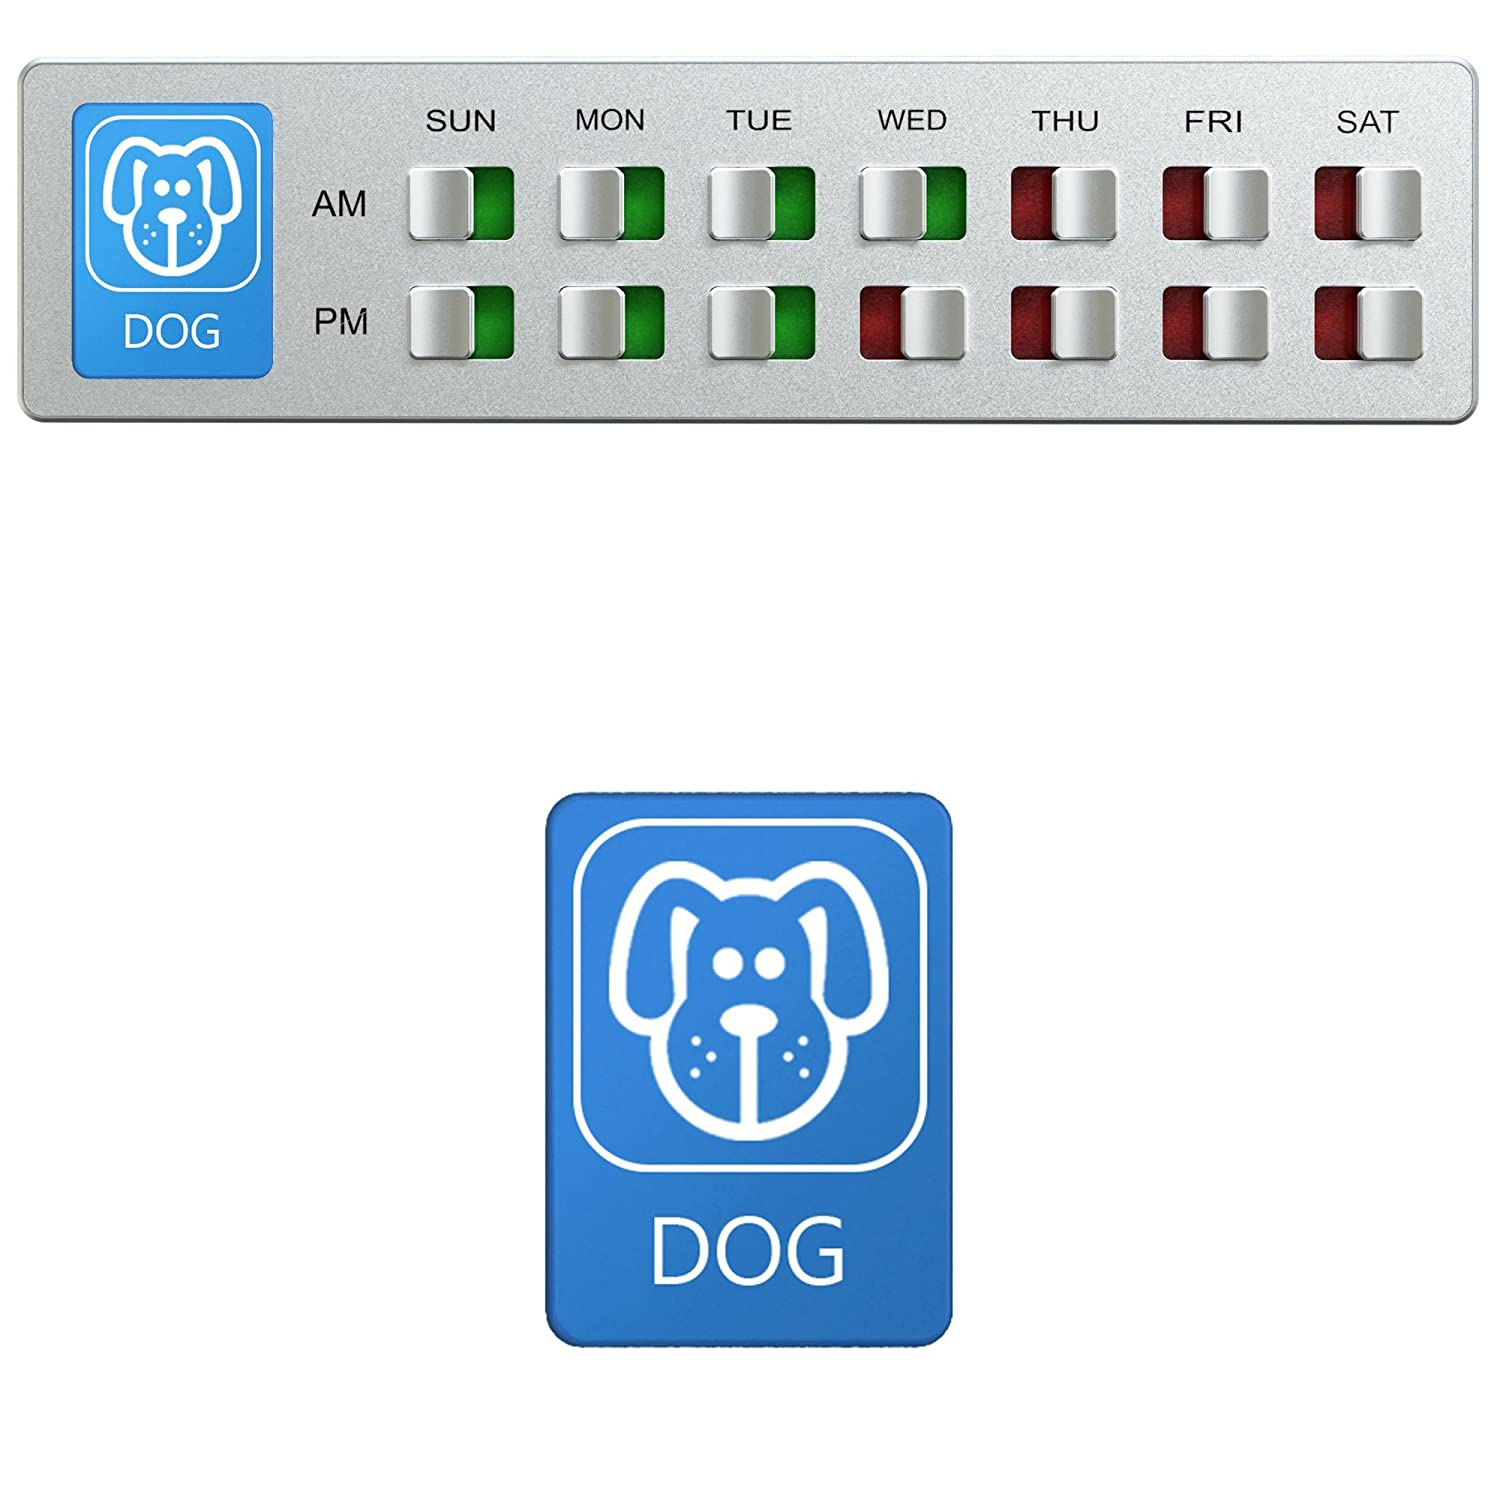 Pet Supplies : Dog Food Organizer - Pet Feeding Reminder - Am Pm Daily  Indicator Sign - Fed or Feed the Puppy Supplies - Fridge Magnets and Double  Sided ...